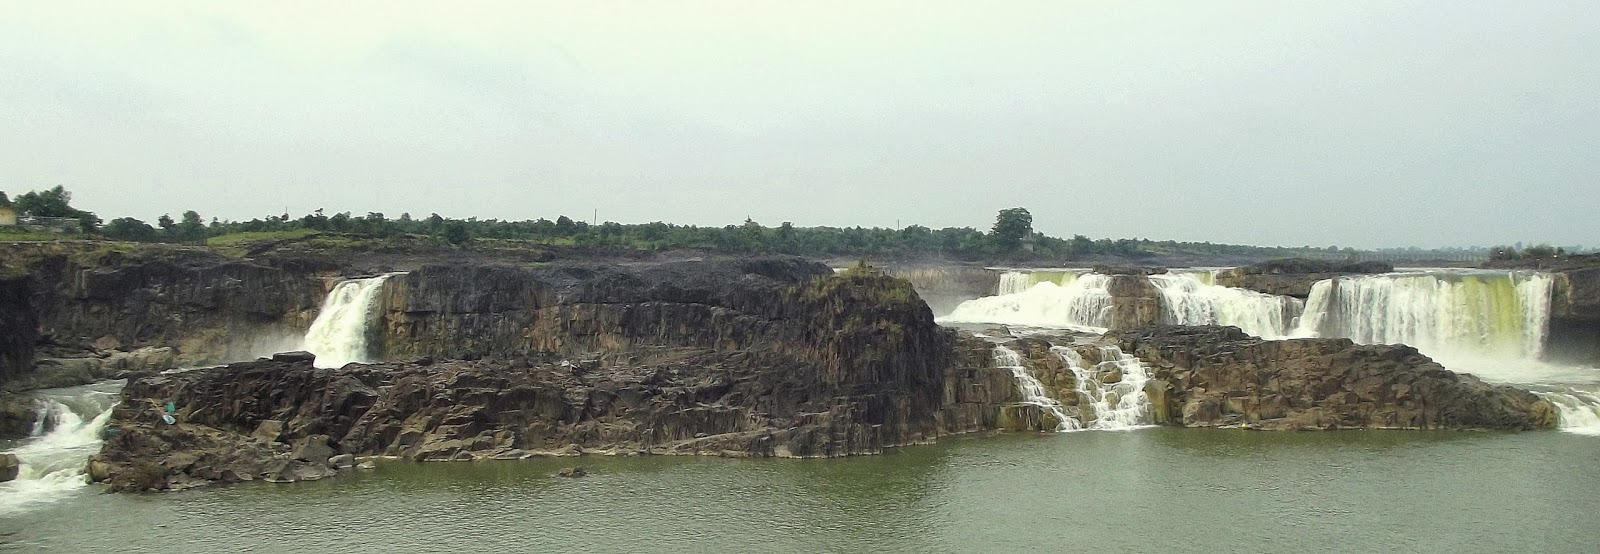 Panaroma view of complete Waterfalls,